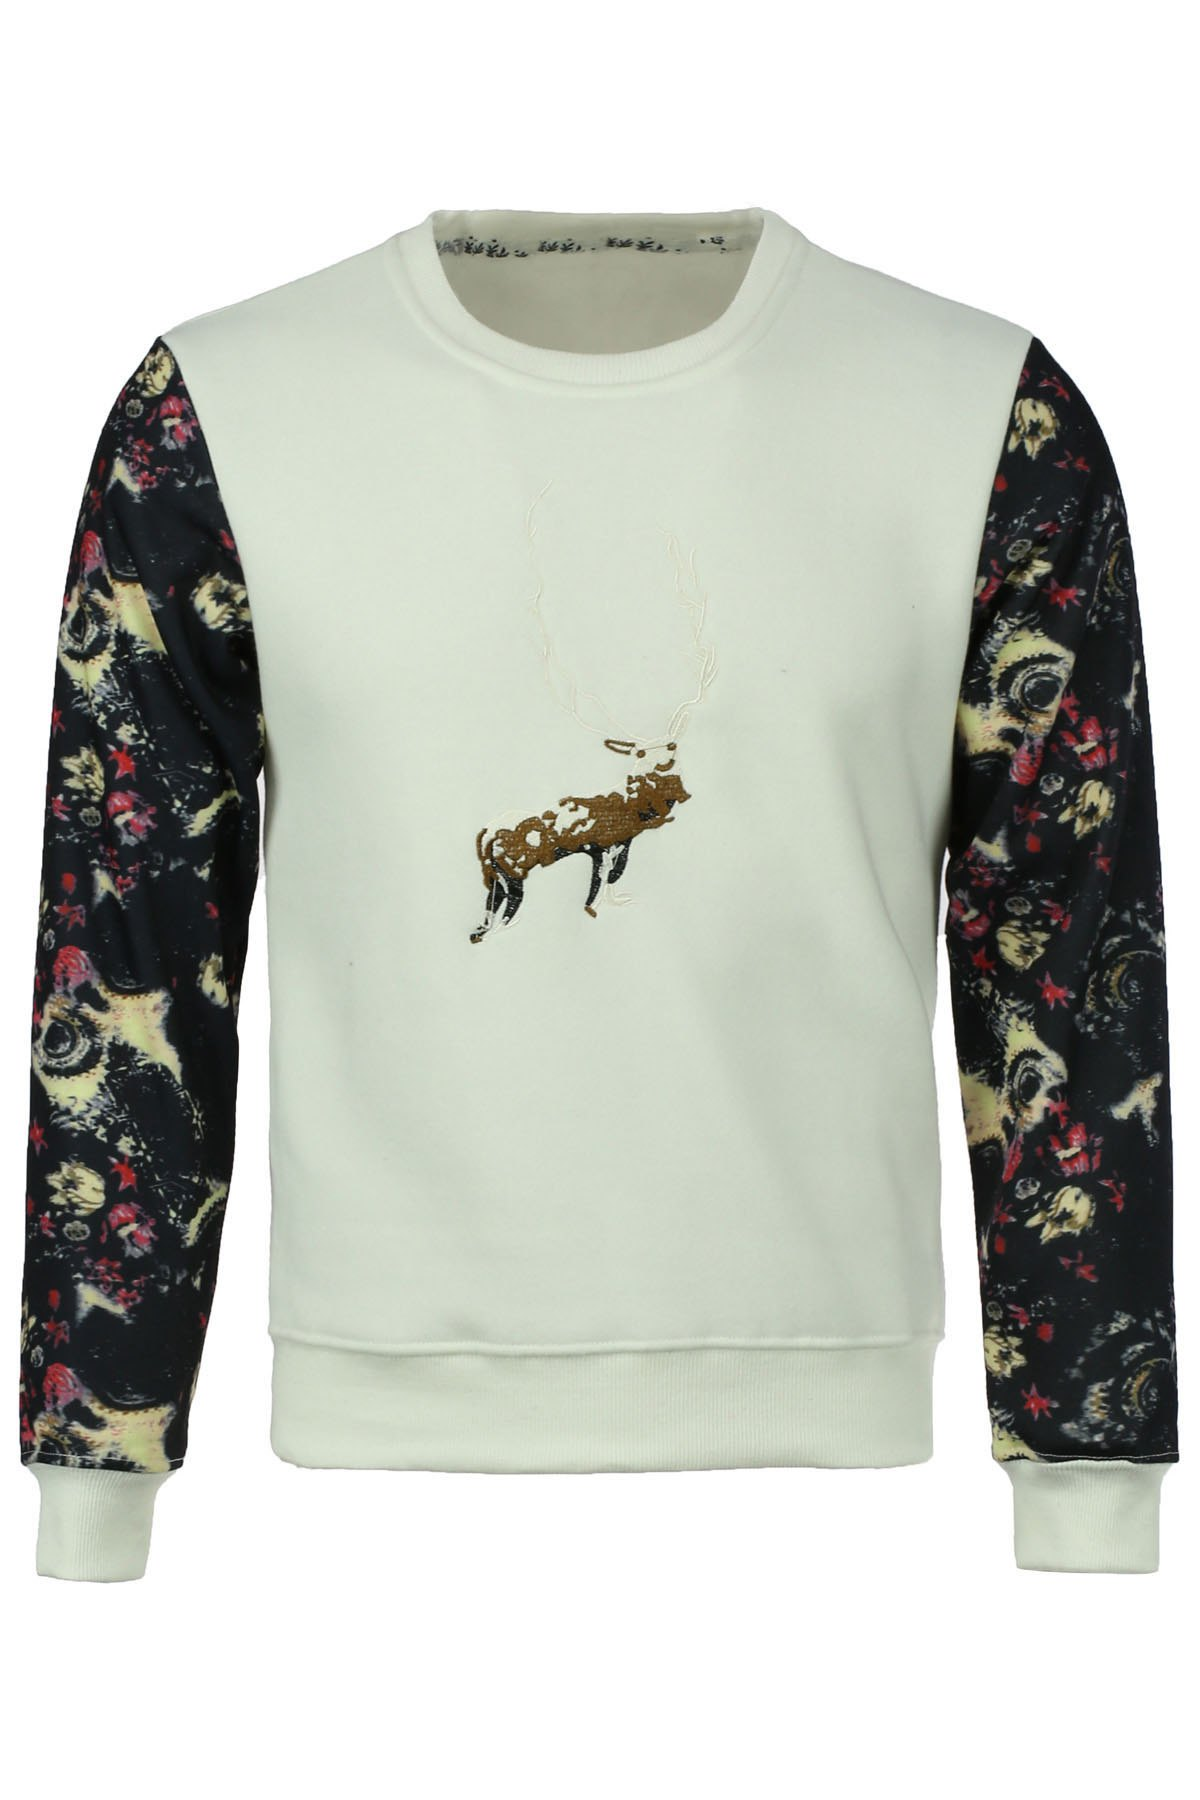 Round Neck Space Print Spliced Elk Embroidered Long Sleeve Men's Sweatshirt - WHITE 5XL